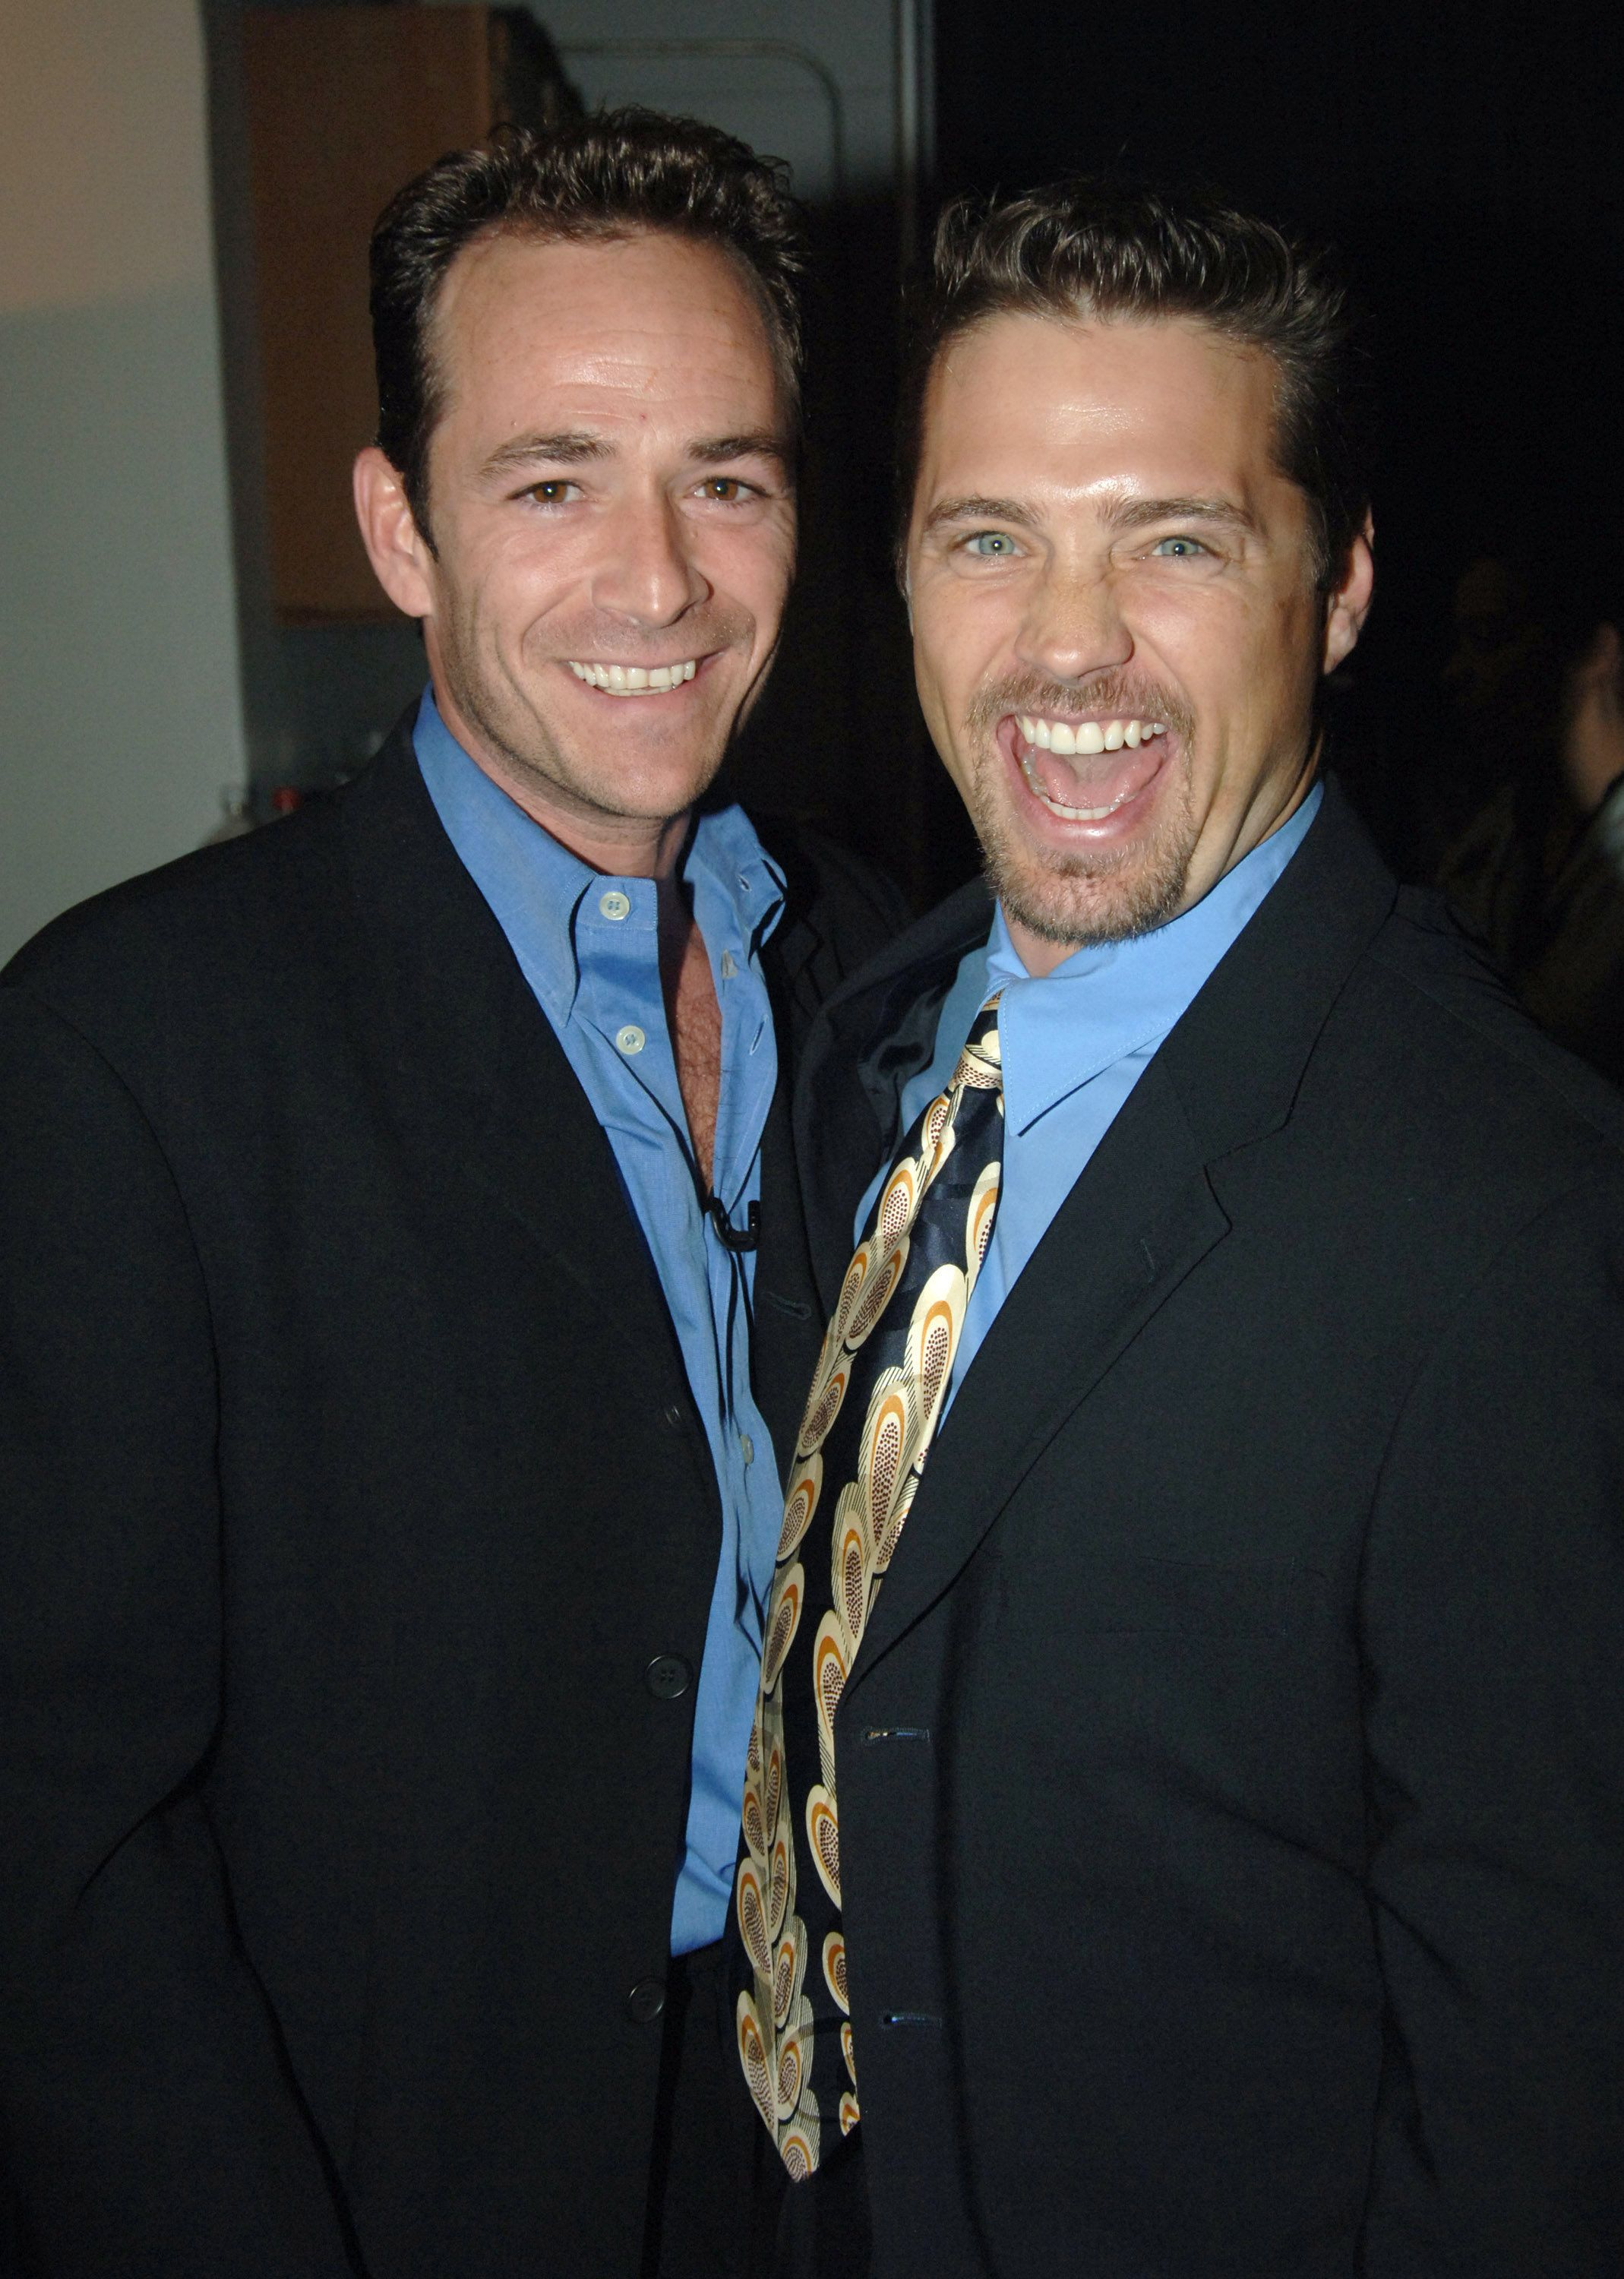 Luke Perry and Jason Priestley during 2005 TV Land Awards - Backstage at Barker Hangar in Santa Monica, California, United States. (Photo by Jeff Kravitz/FilmMagic, Inc)